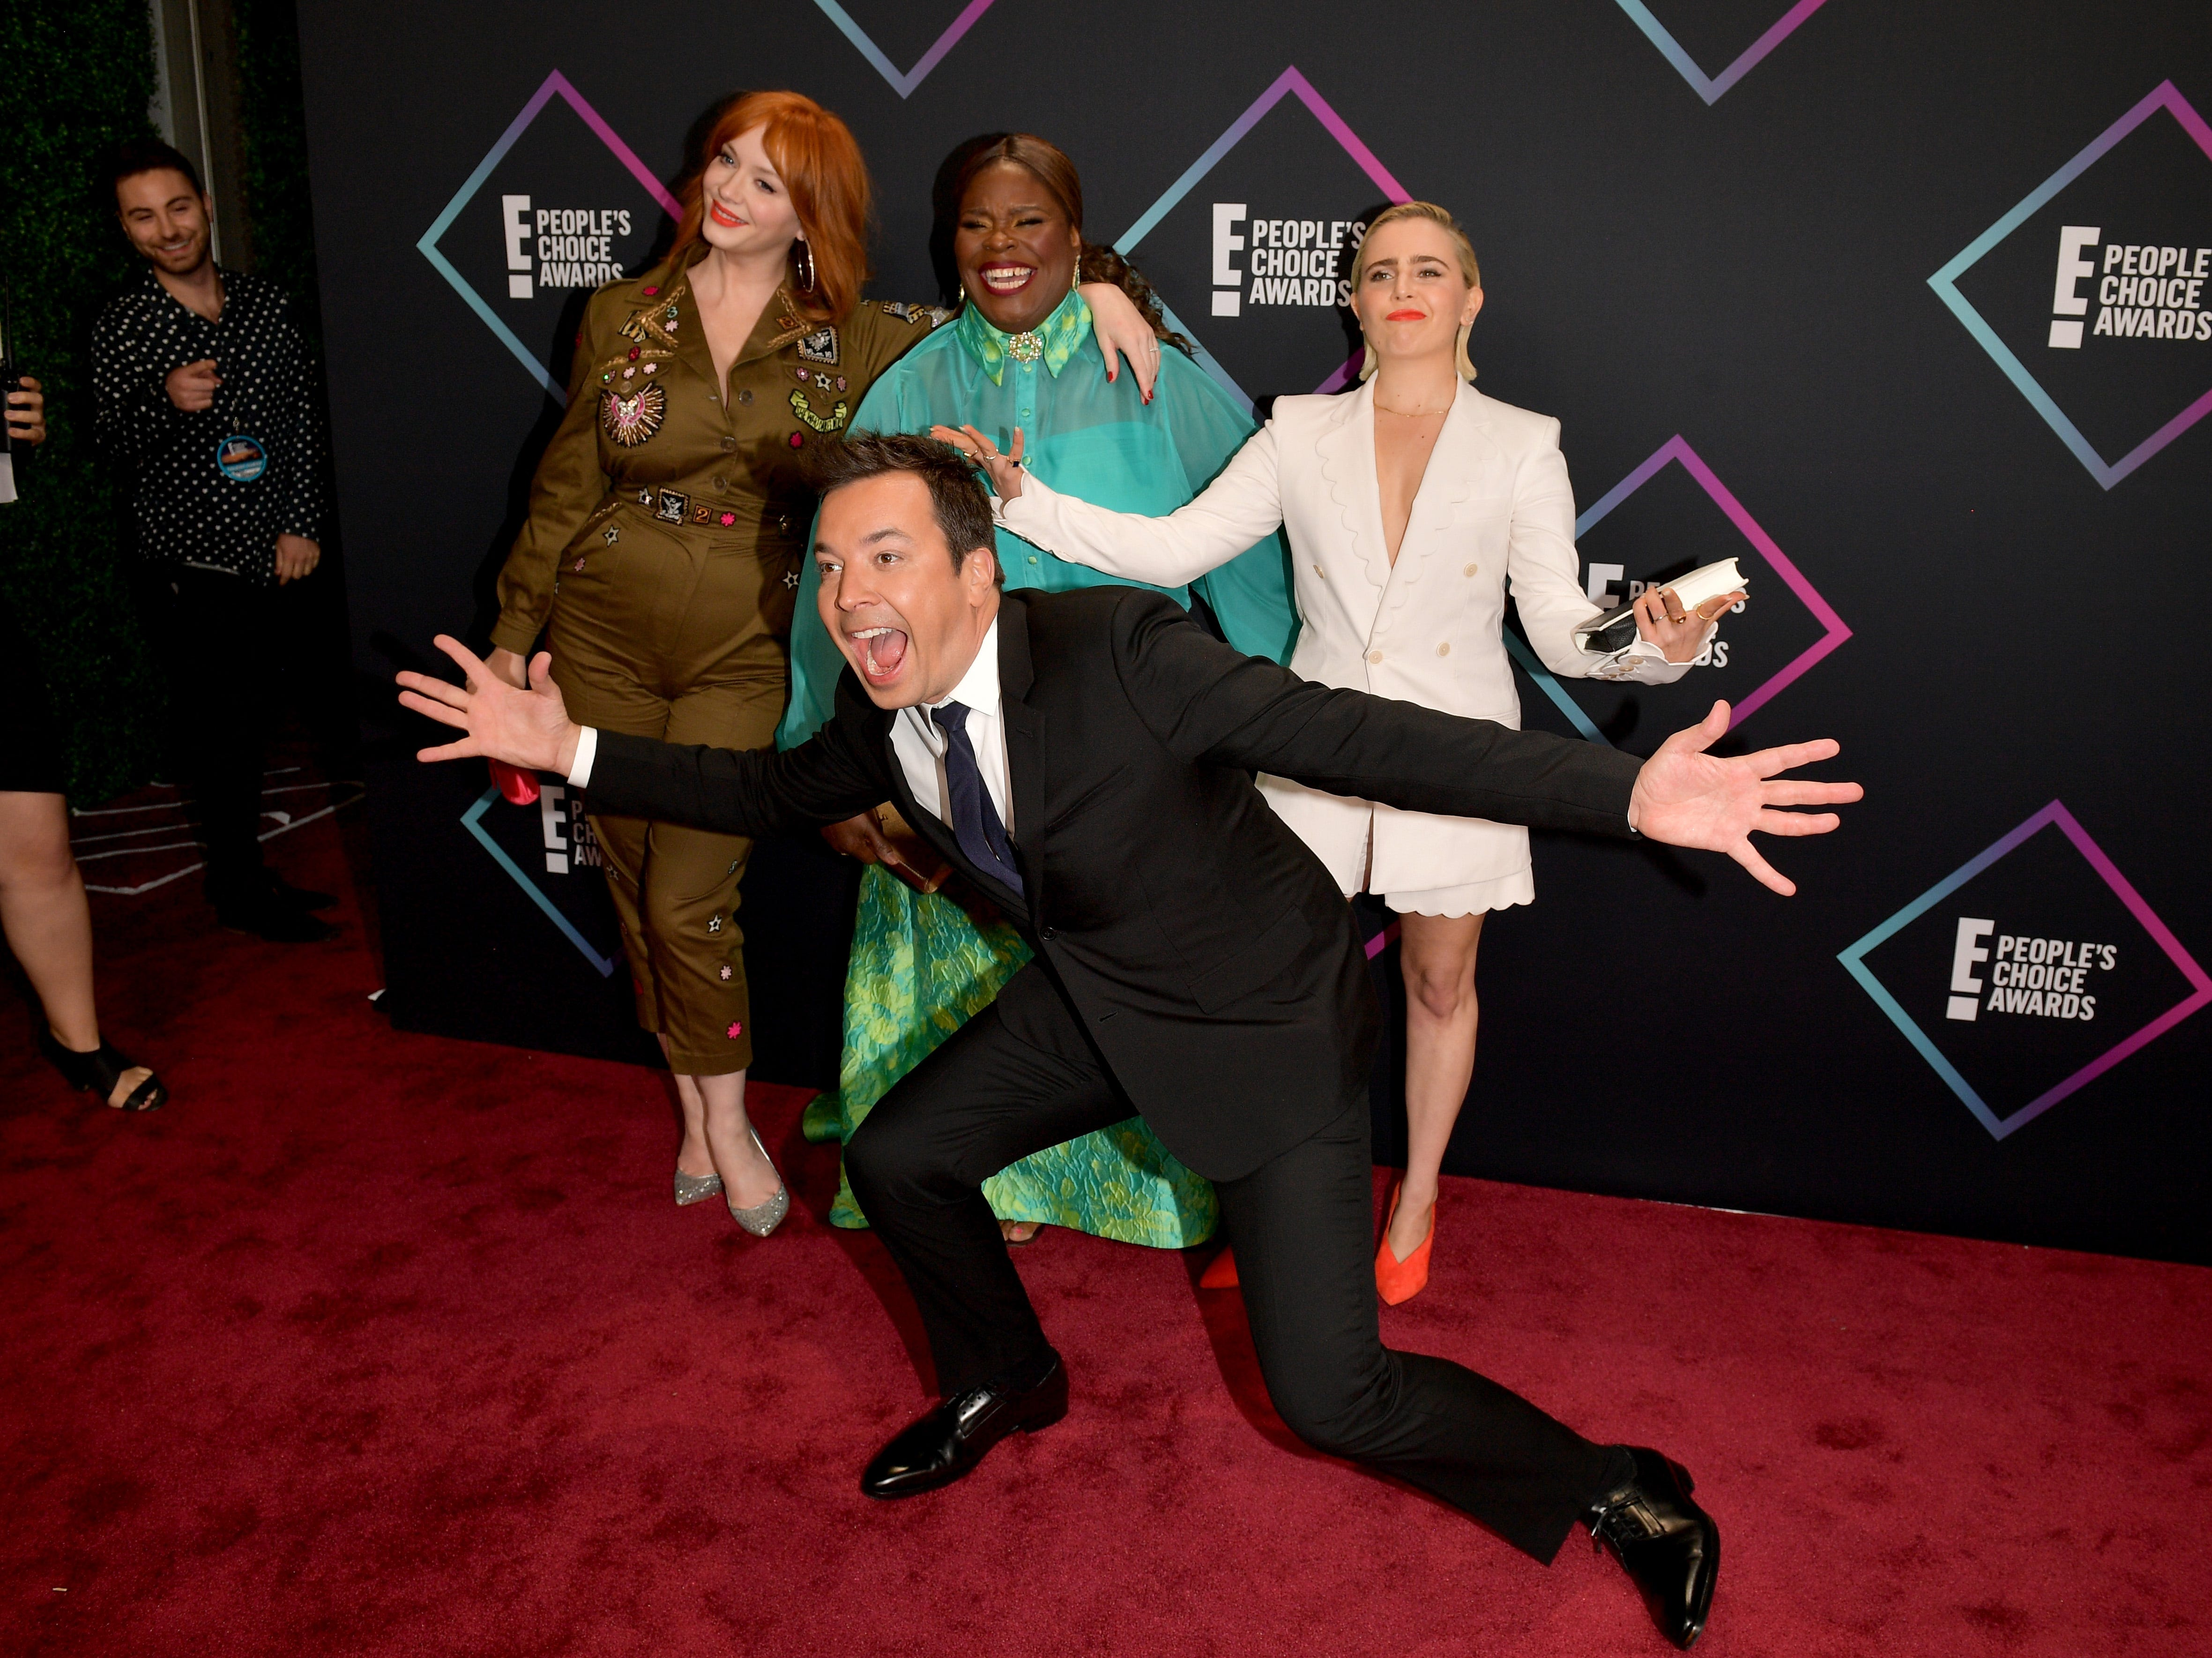 SANTA MONICA, CA - NOVEMBER 11:  (back L-R) Christina Hendricks, Retta, Mae Whitman, and (front) Jimmy Fallon attend the People's Choice Awards 2018 at Barker Hangar on November 11, 2018 in Santa Monica, California.  (Photo by Matt Winkelmeyer/Getty Images) ORG XMIT: 775237965 ORIG FILE ID: 1060374550